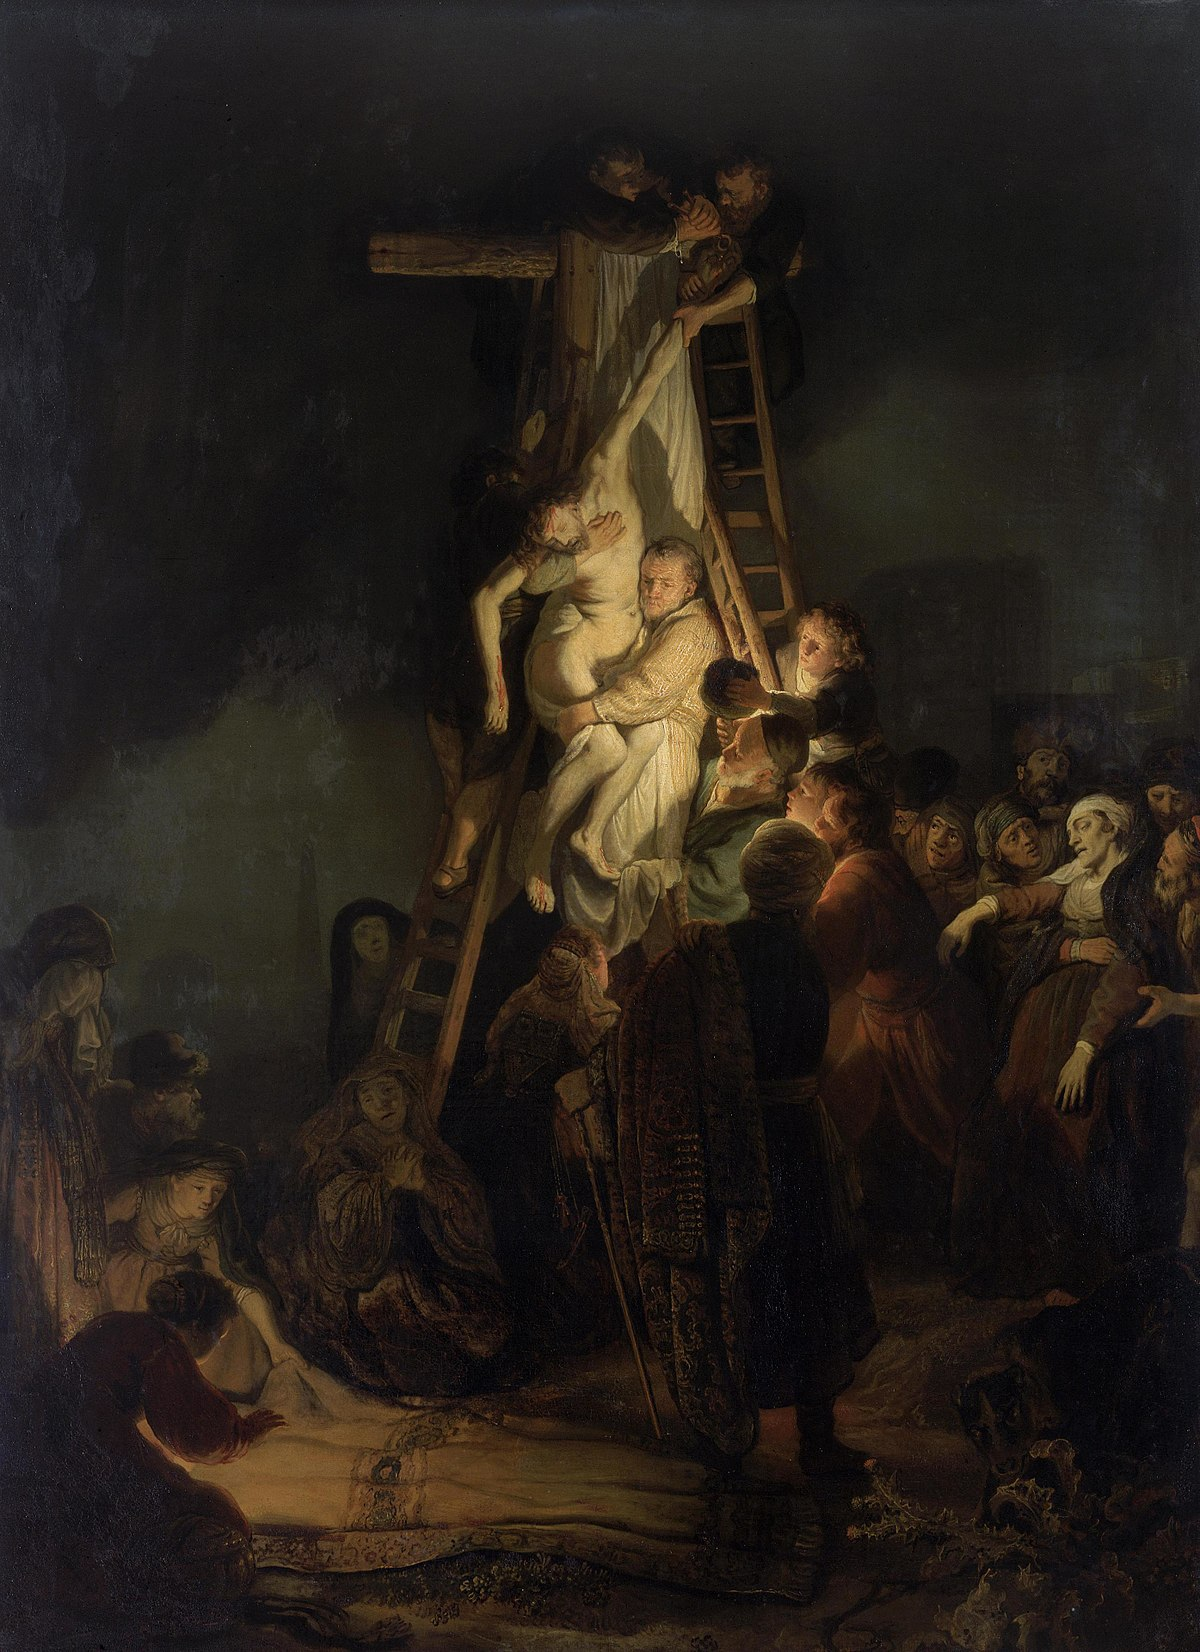 The Descent from the Cross (Rembrandt, 1634) - Wikipedia